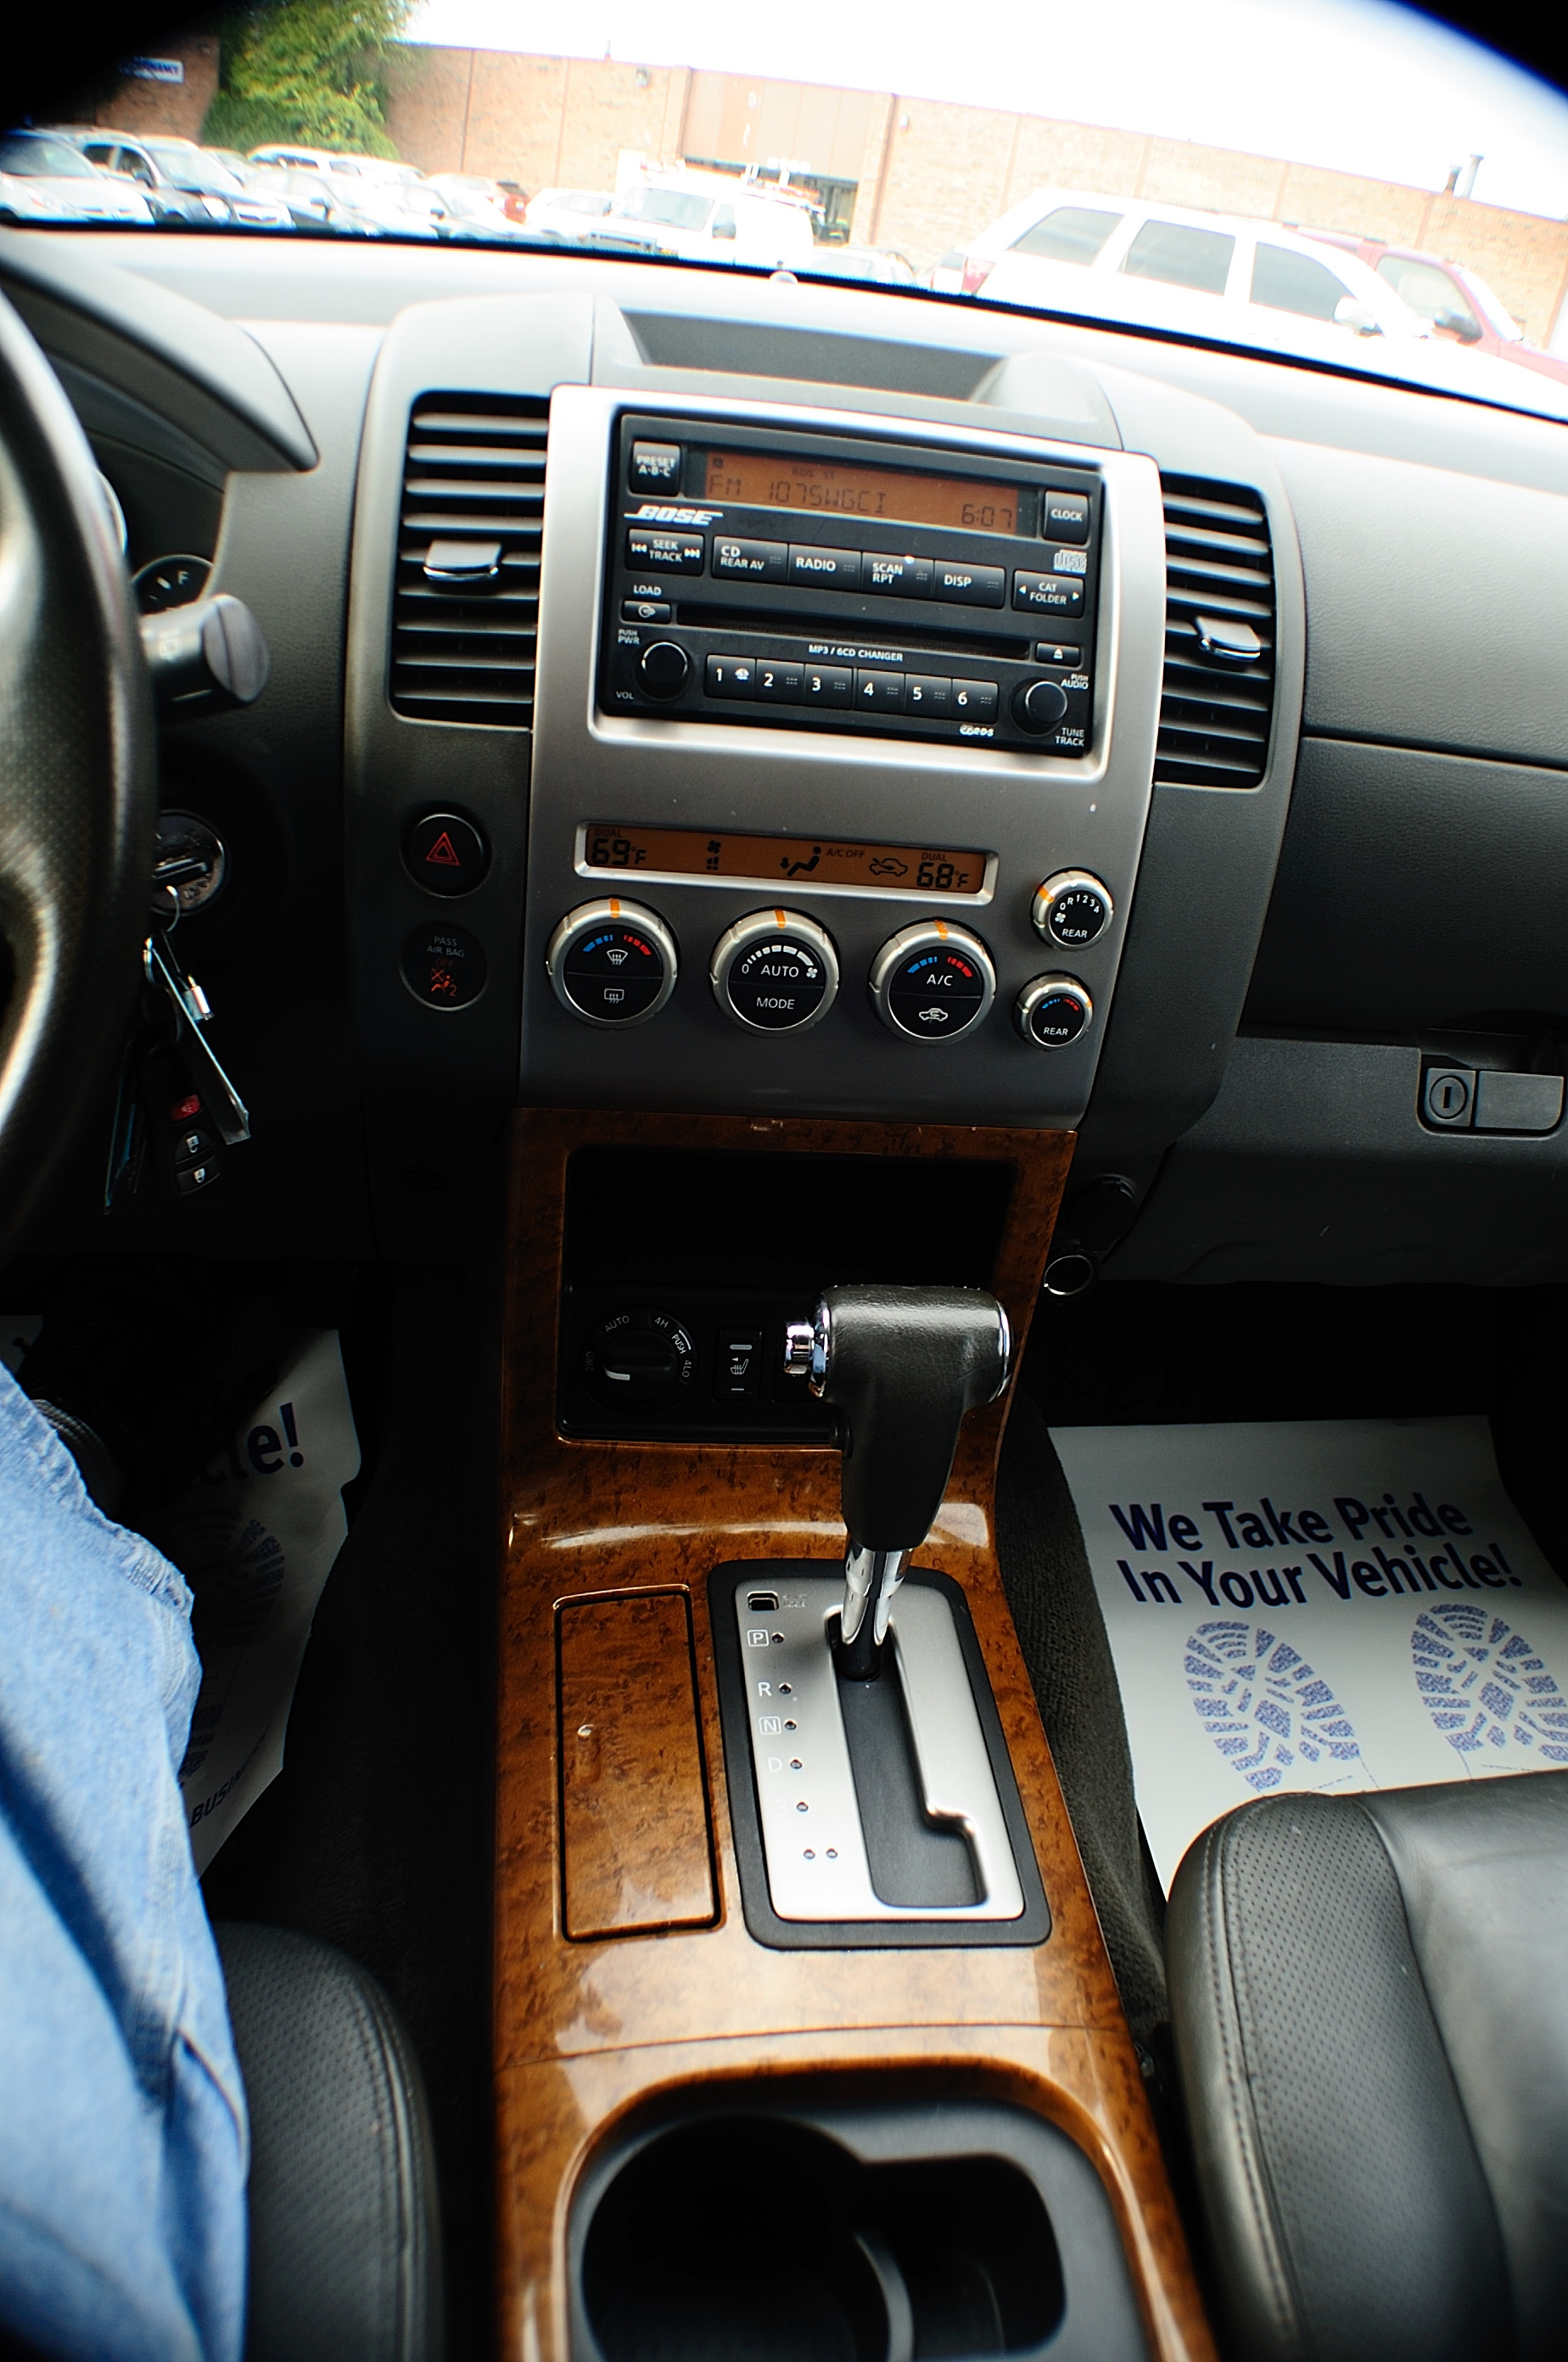 2005 Nissan Pathfinder LE Black 4x4 Used Sport SUV Sale North Chicago Old Mill Creek